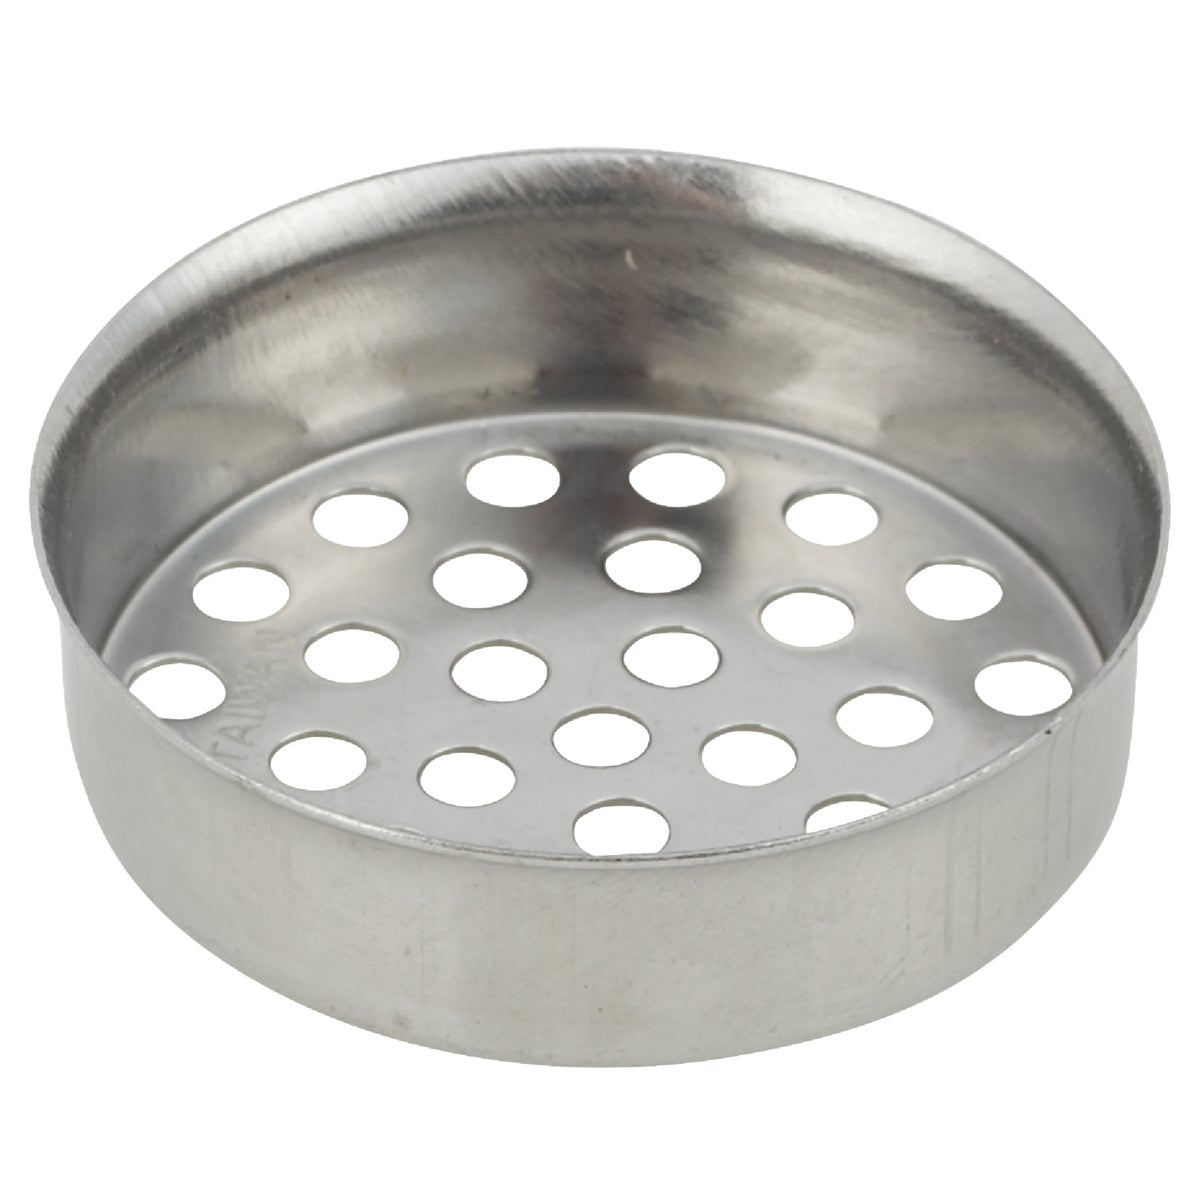 1-3/8 TUB STRAINER - 415615 by Do it Best